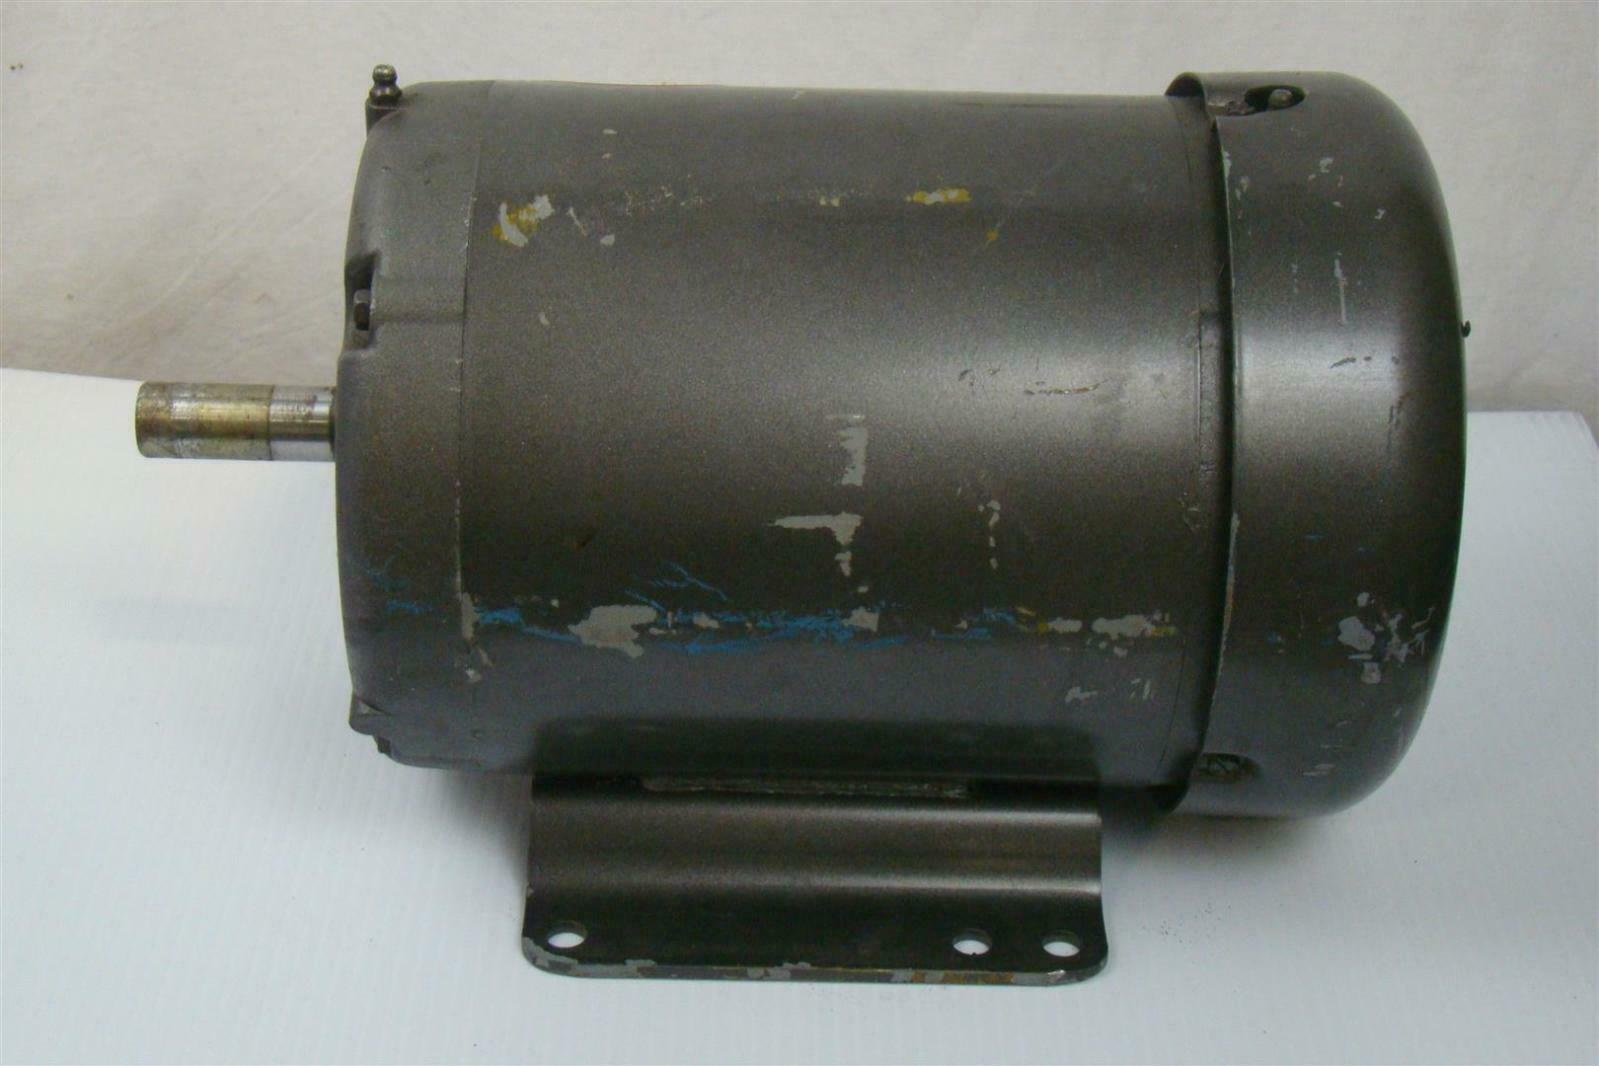 Baldor industrial motor 1 hp 208 460v 1140rpm m3604 ebay for Baldor industrial motor parts